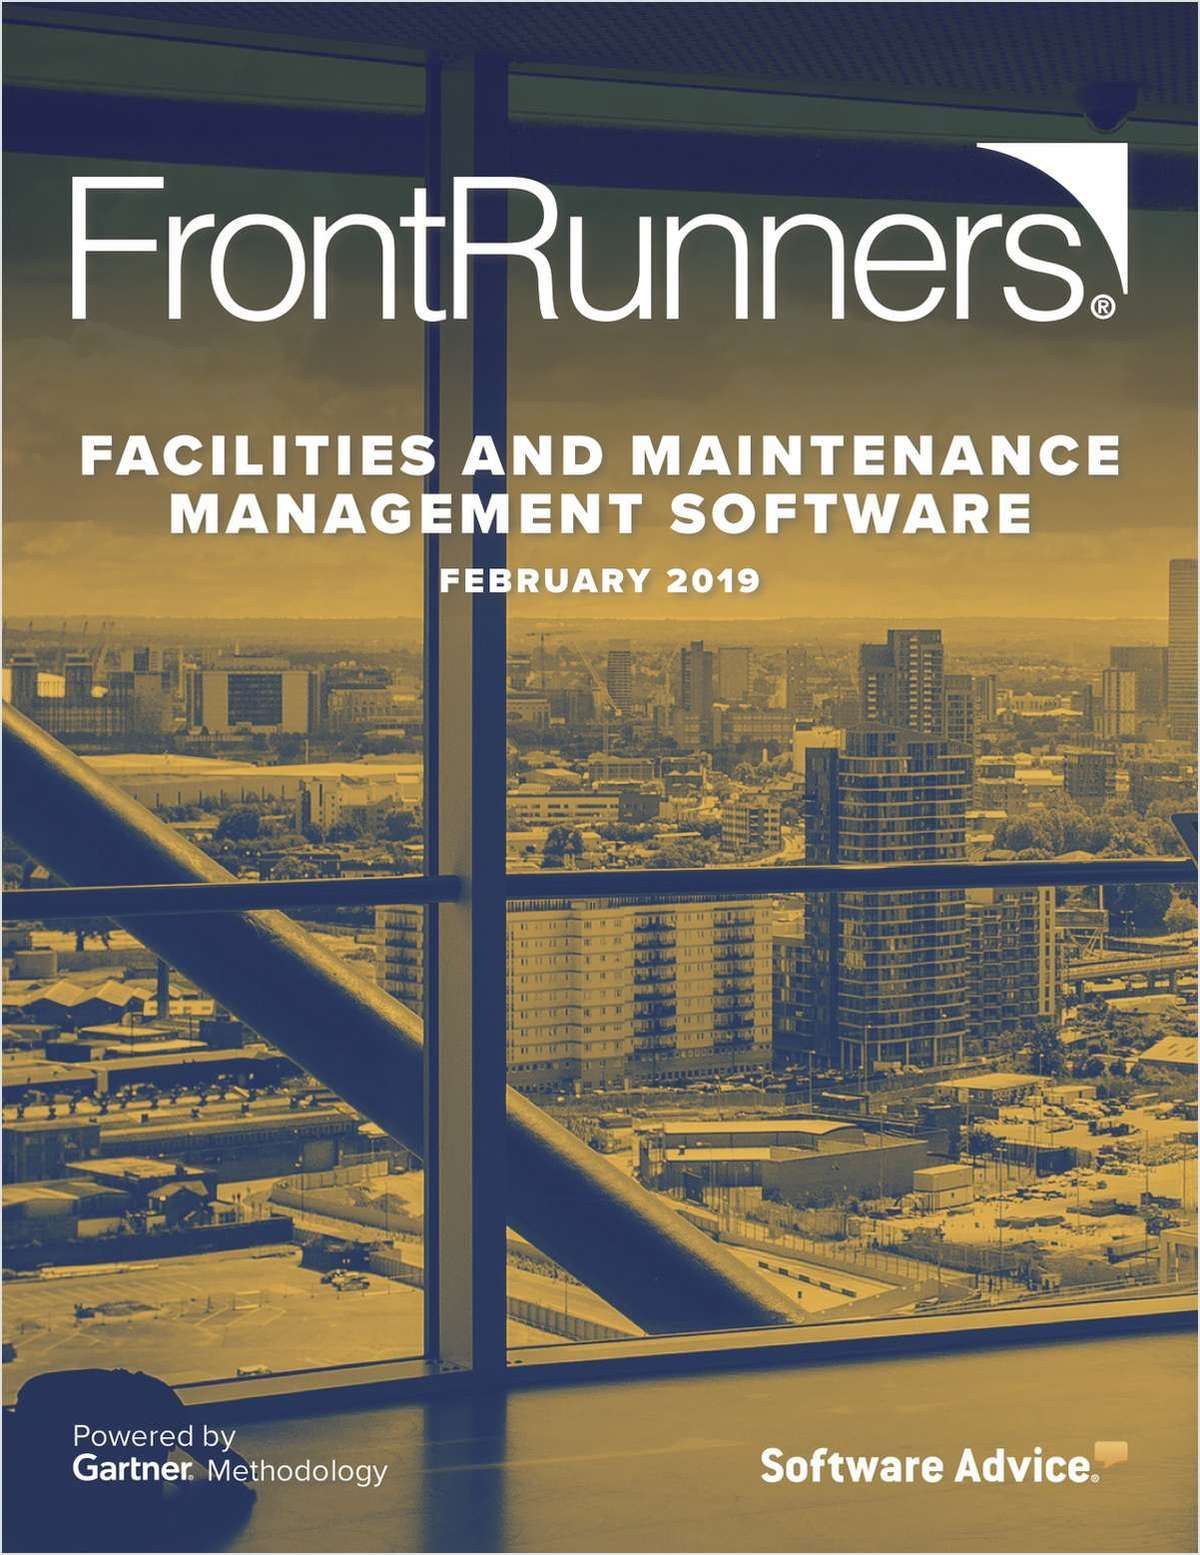 Top Rated FrontRunners for Facilities and Maintenance Software